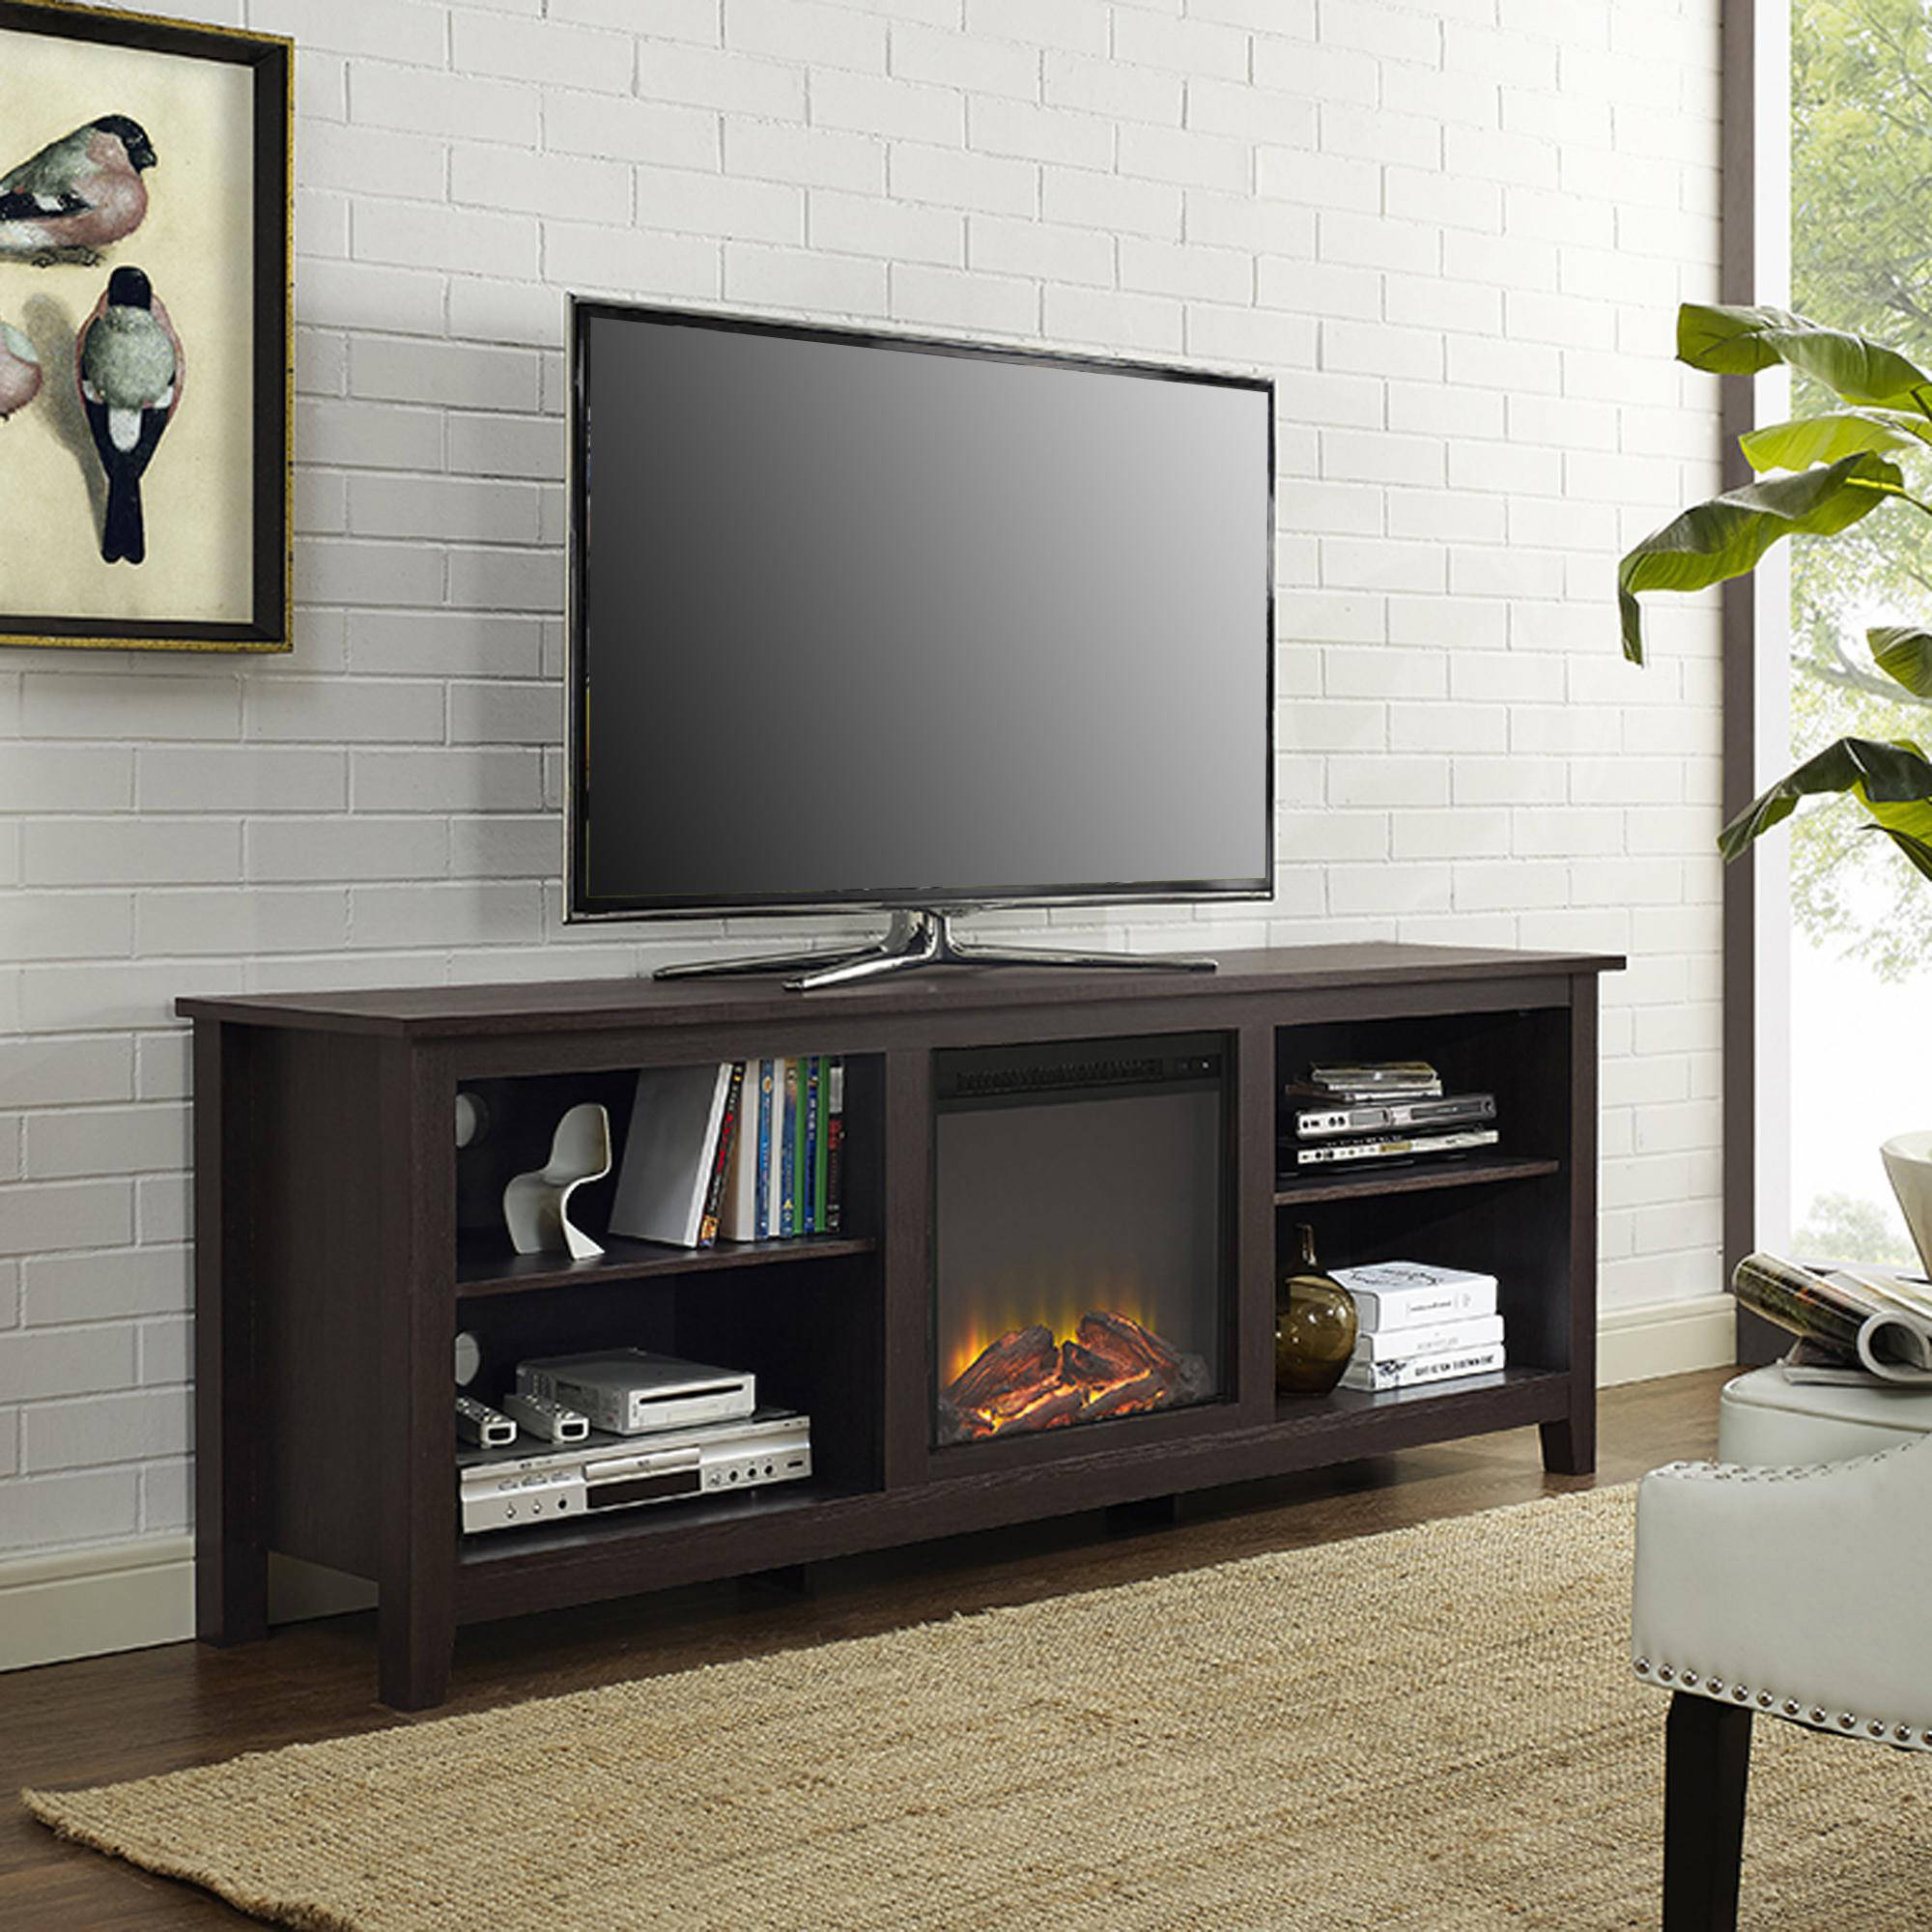 Tv Stands & Entertainment Centers – Walmart Intended For Latest Cabinet Tv Stands (View 14 of 20)